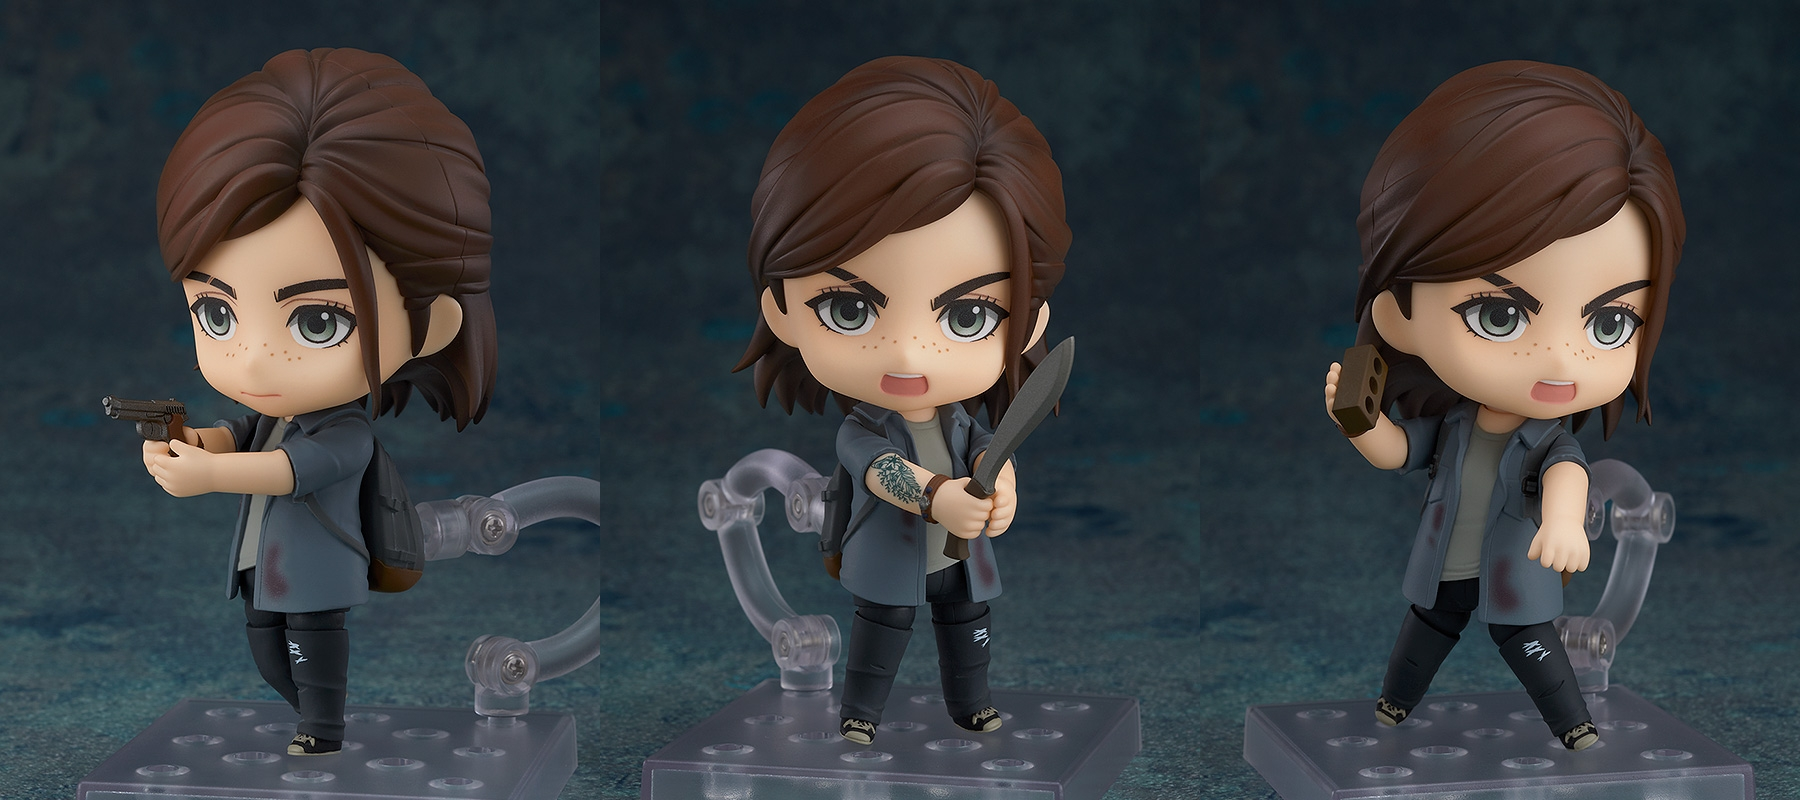 Preorders Close Tomorrow For Good Smile Company's Nendoroid Ellie From The Last Of Us: Part 2